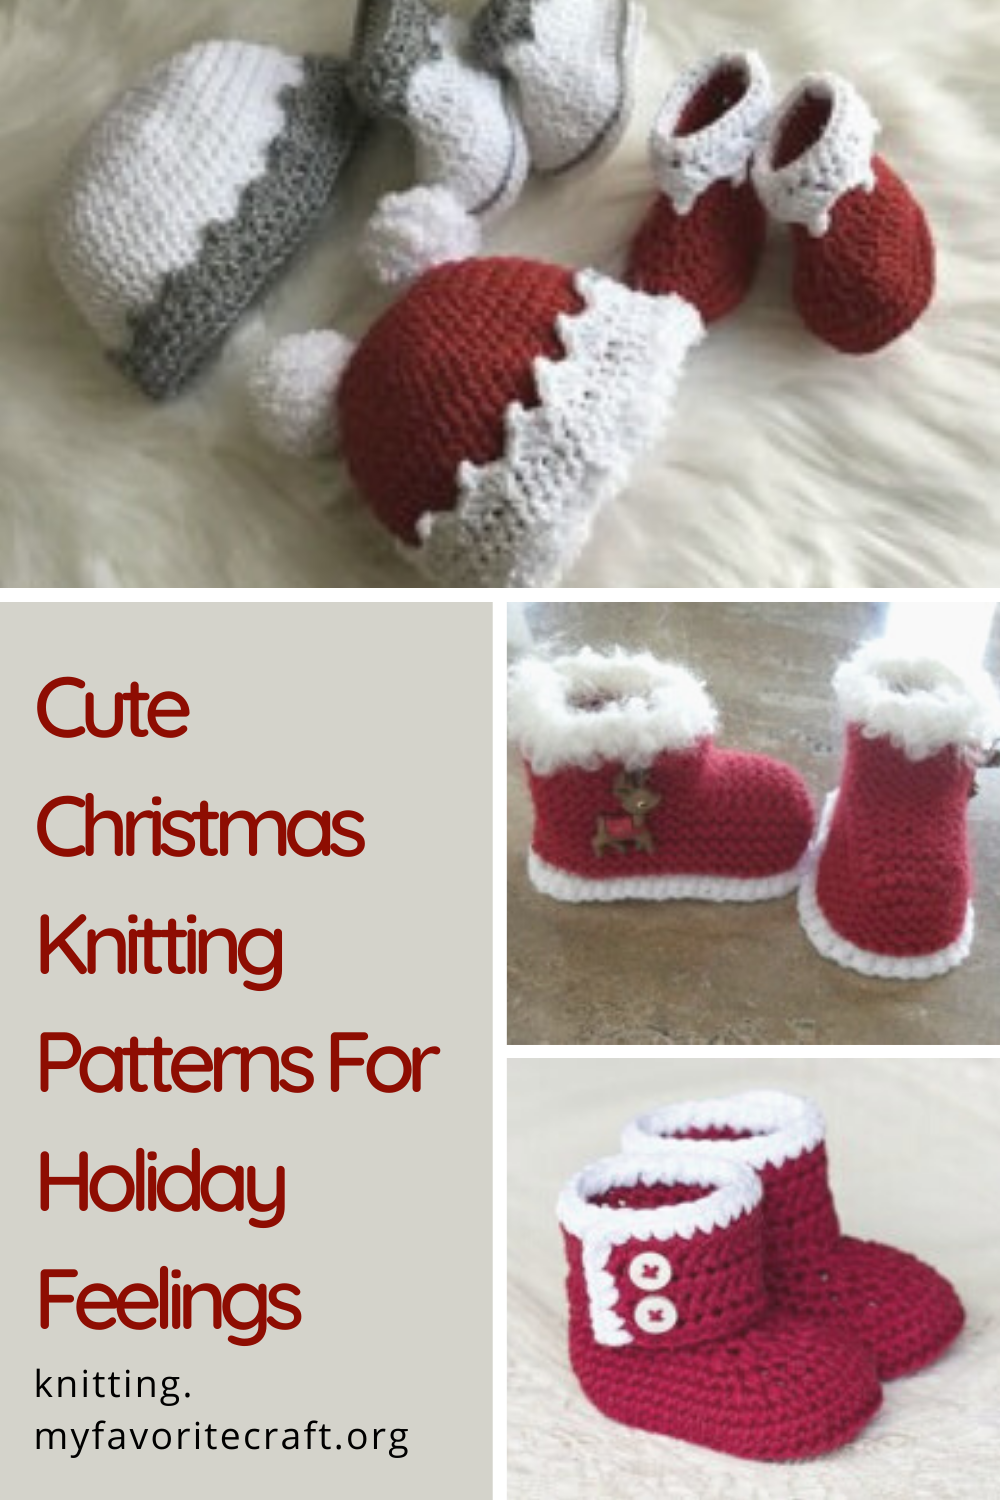 Christmas Knitting Patterns For Holiday Feelings In 2020 Christmas Knitting Patterns Christmas Knitting Knitting Patterns